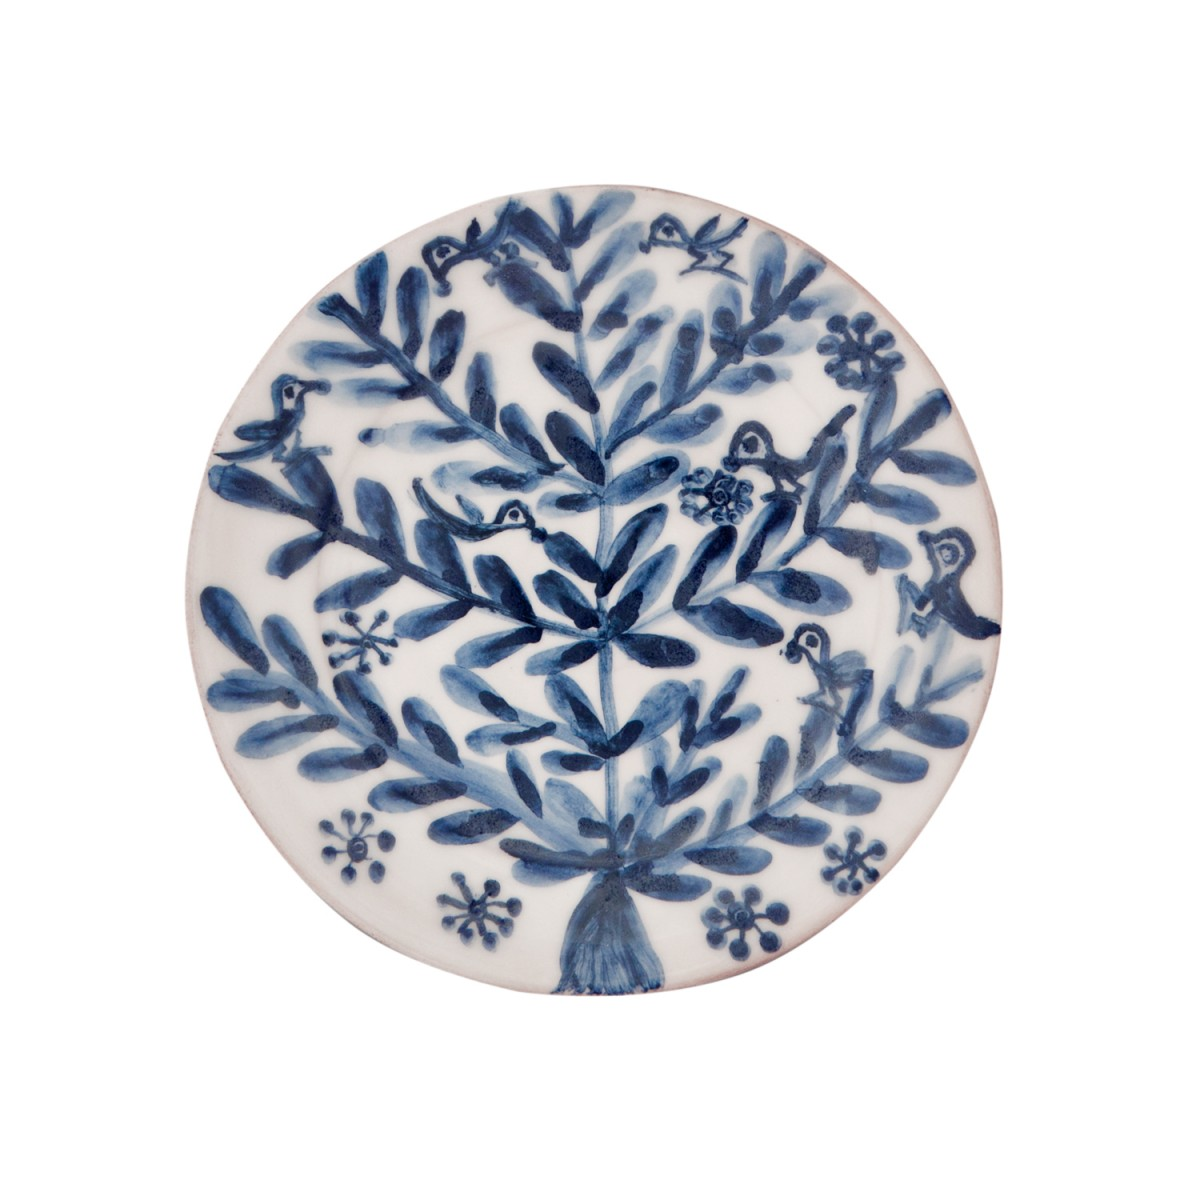 Decorative Blue and White plates, Birds and Flowers II-1